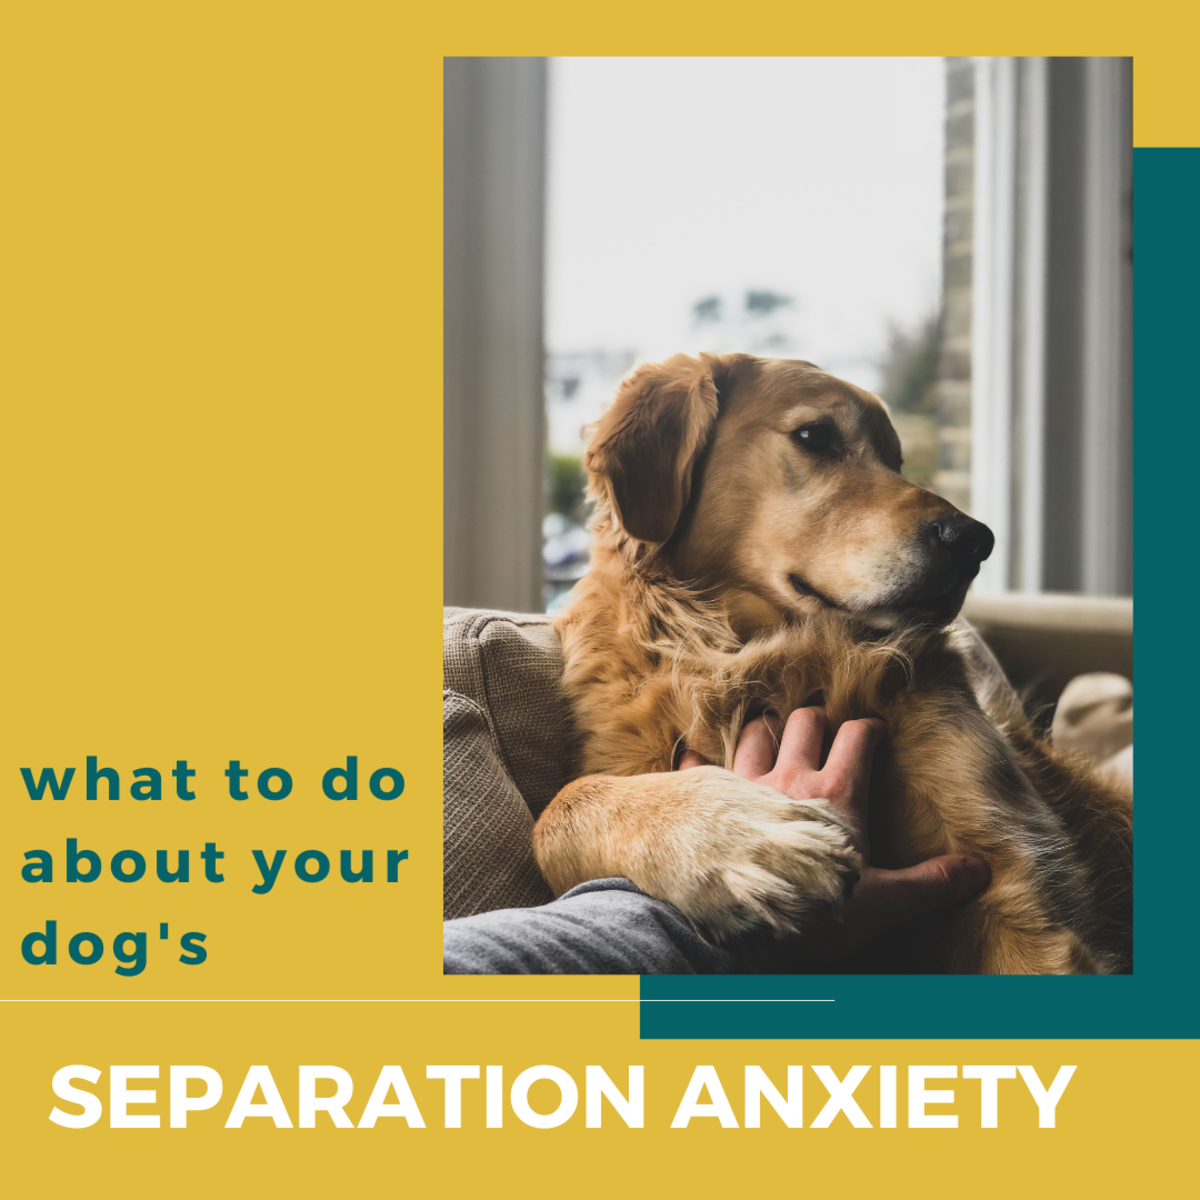 Separation anxiety can be extremely taxing for both you and your dog. Learn how to identify it and prevent it from happening in the future.